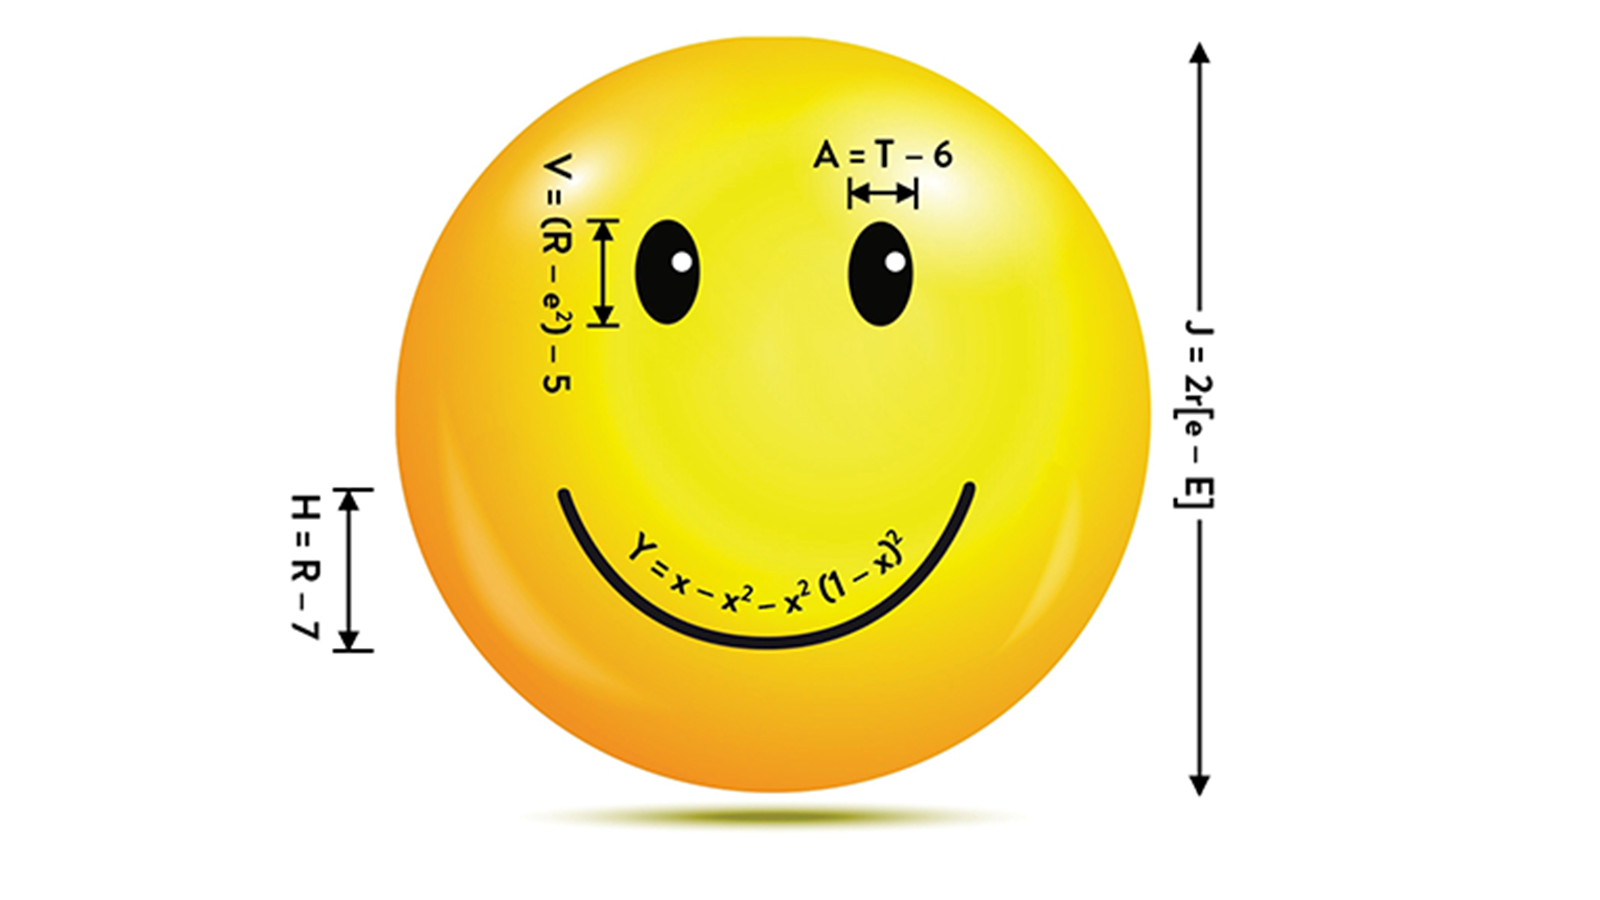 A yellow smiley face covered with equations and algorithms on a white background.